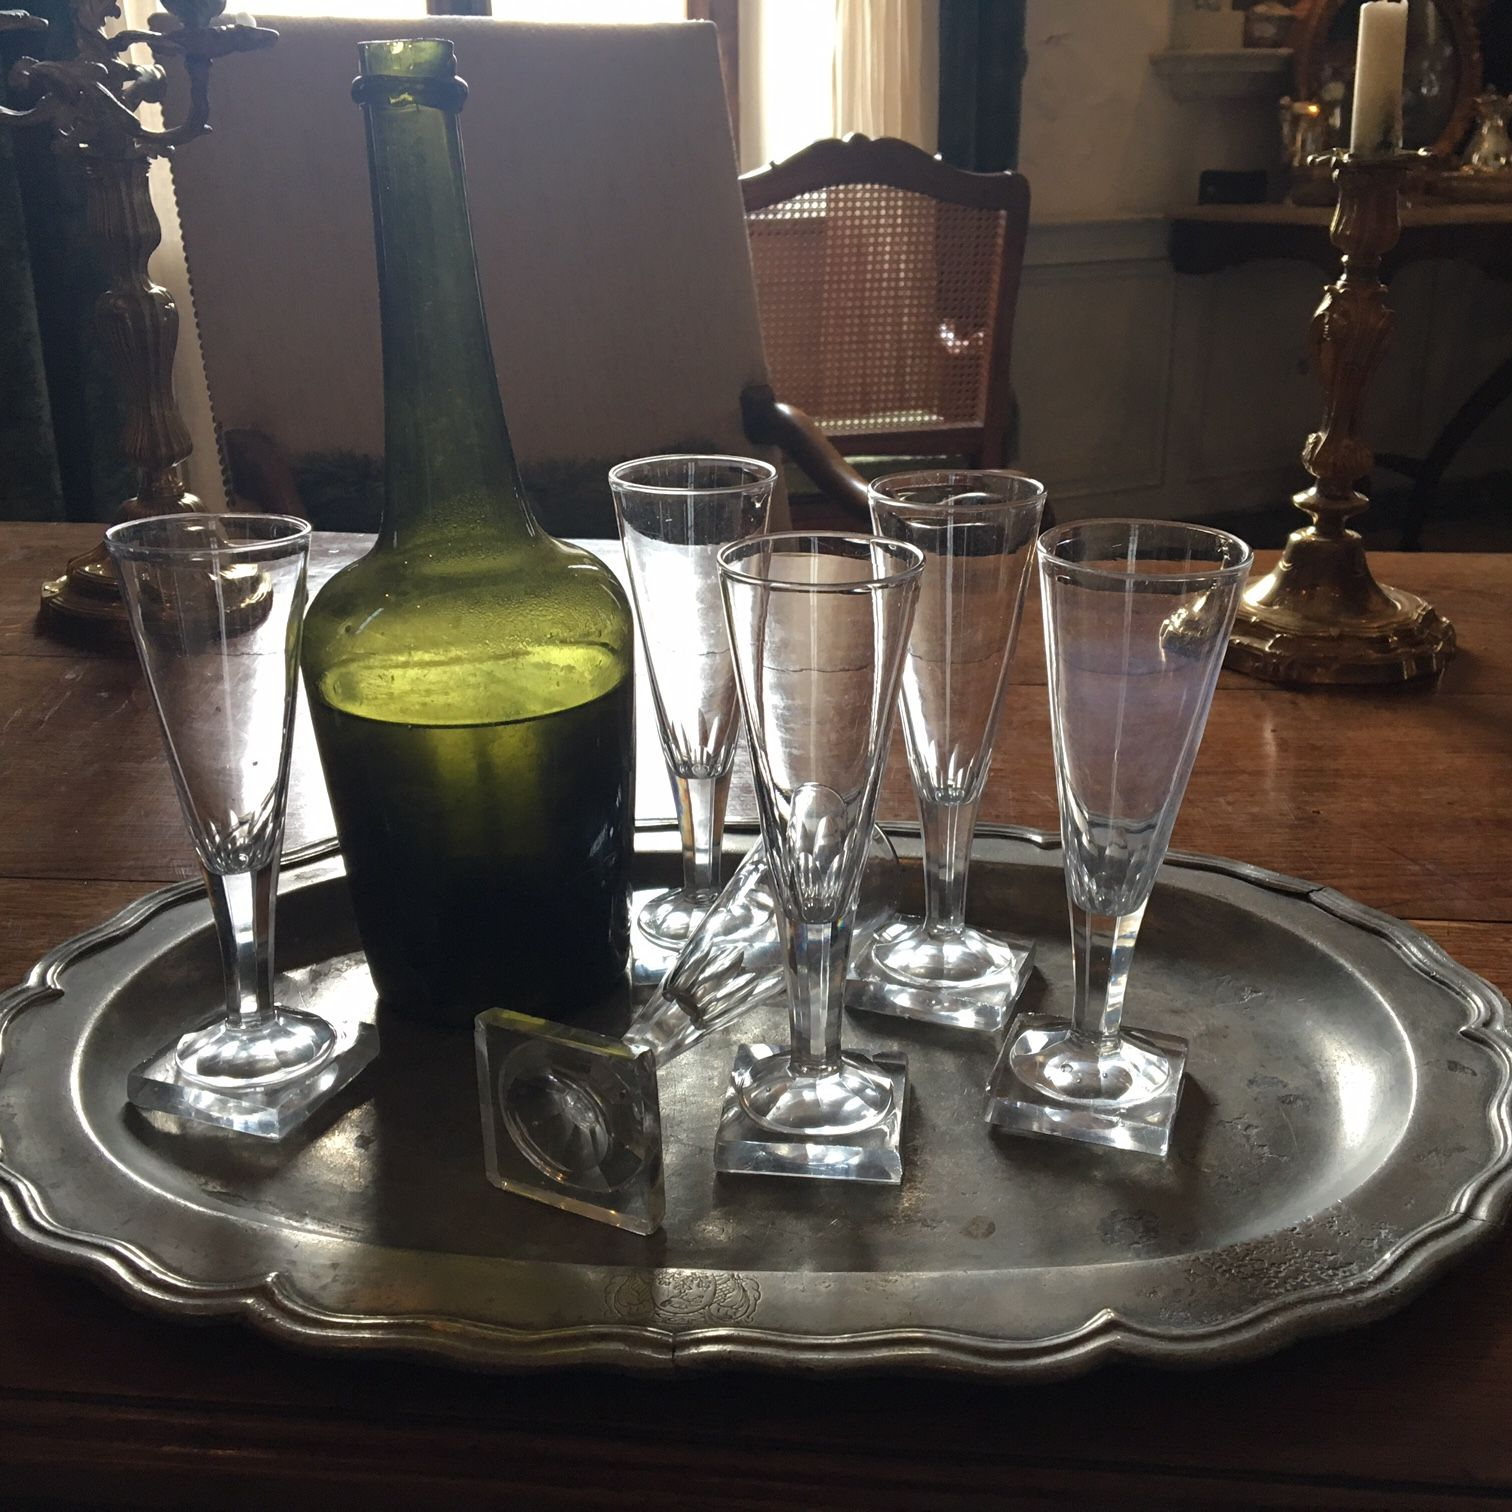 Don't forget Valentine's Day is February 14th. Come check out our diverse selection of champagne flutes here at Au Vieux Paris Antiques.  #Valentinesday #antique #champagneflutes